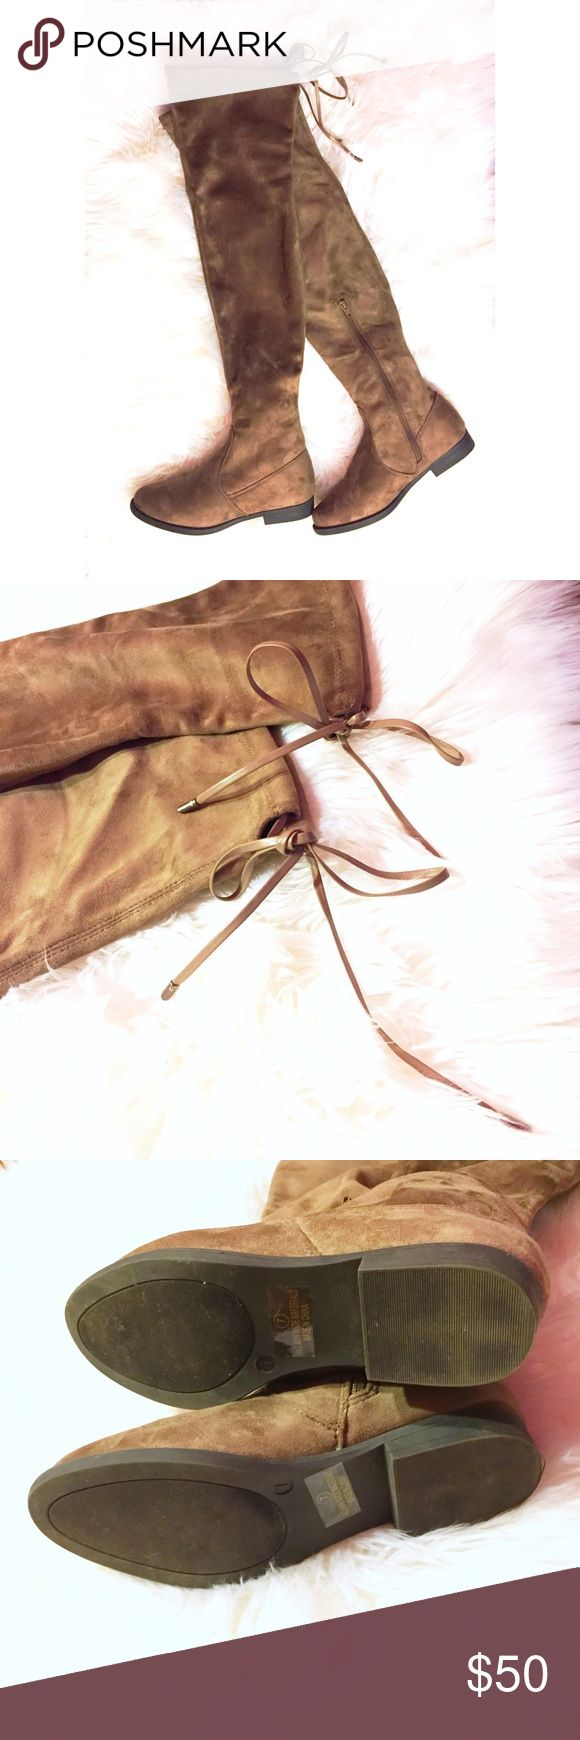 """Taupe OTK Vegan Suede Boots Taupe faux suede over-the-knee boots with a tie back silver-tipped drawstring. 1"""" heel height, 23.5"""" shaft height with heel, 15.5"""" circumference. Inside of foot has a partial zipper closure. Attempted to wear once but wrong size for my foot, bottom sole is almost new (see pics). Comes with original box. Please ask questions and feel free to bundle with other items in my closet for a discount! 💕 Shoes Over the Knee Boots"""